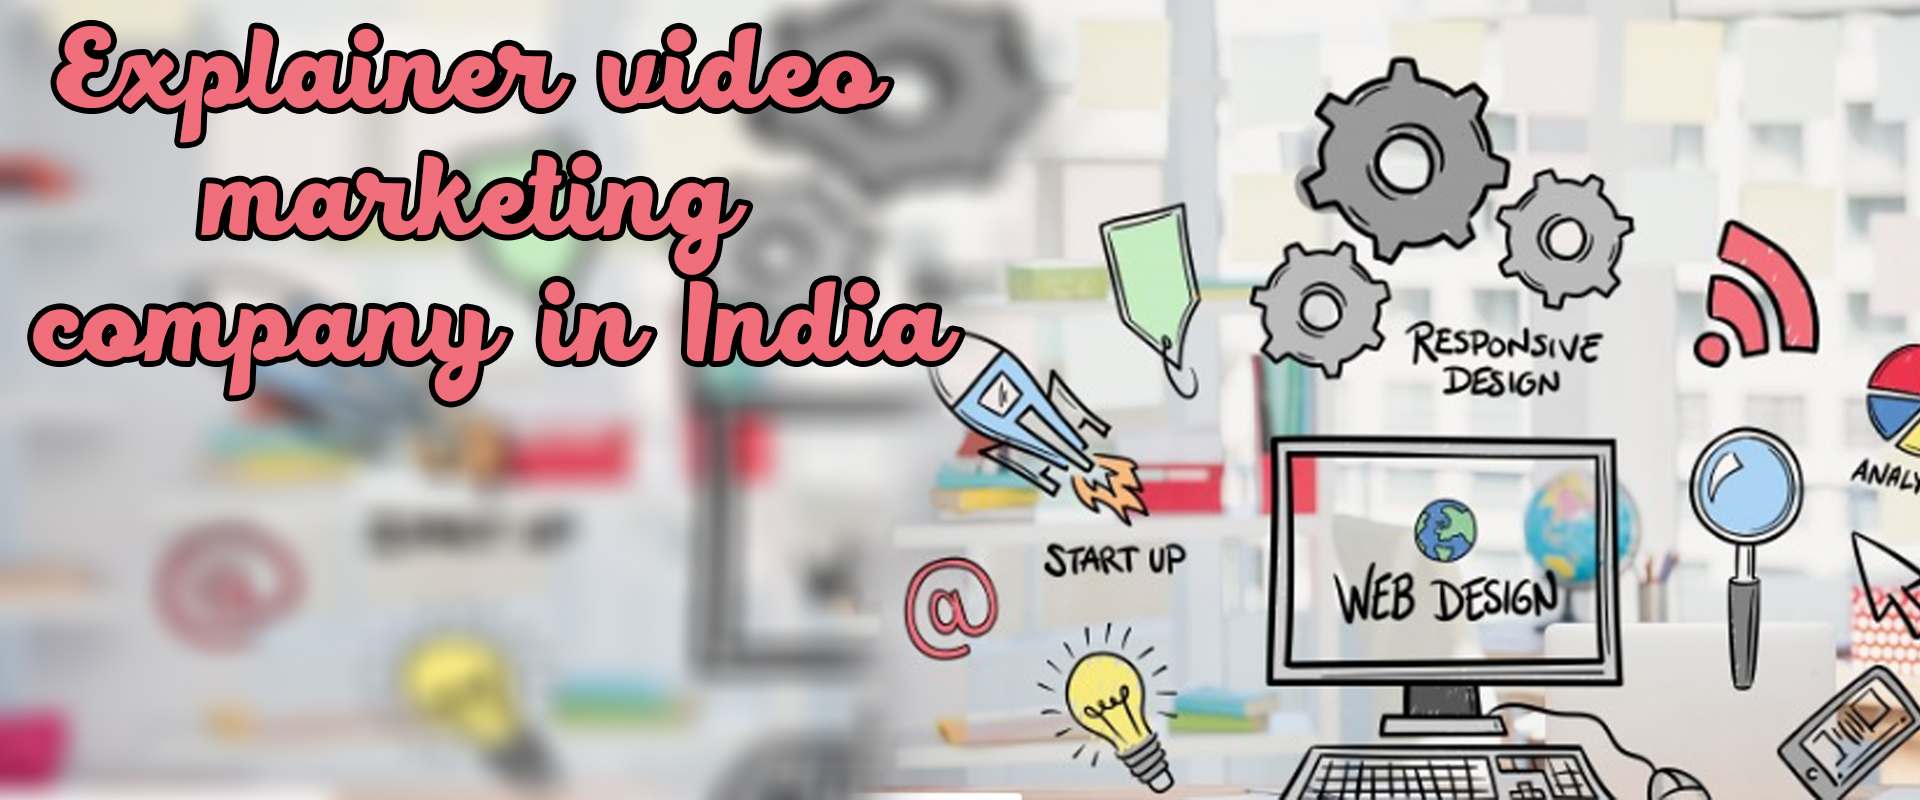 Explainer video marketing company in India